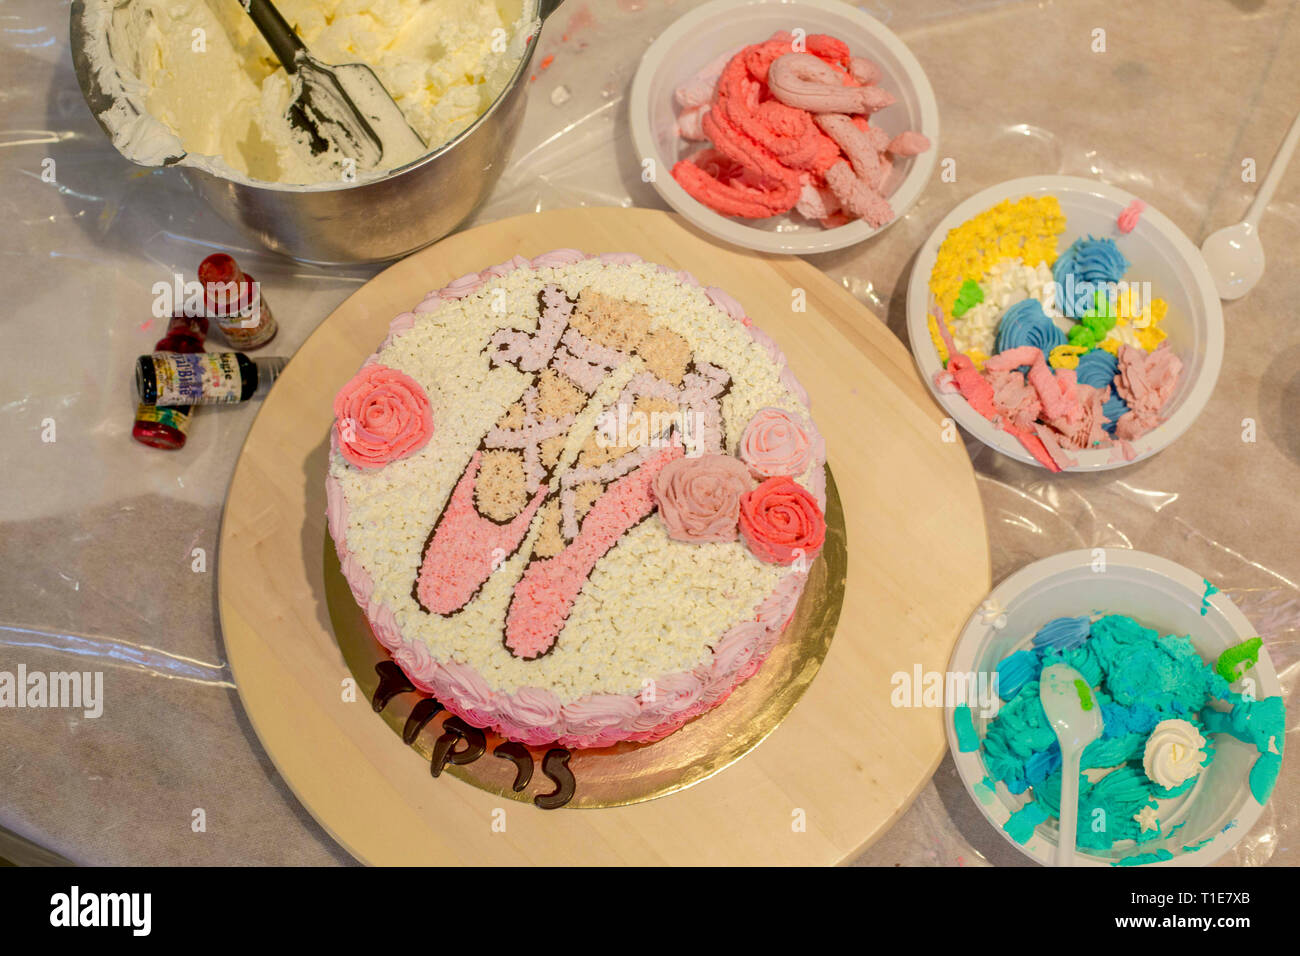 Decorating a birthday cake with icing sugar ballet shoes, - Stock Image